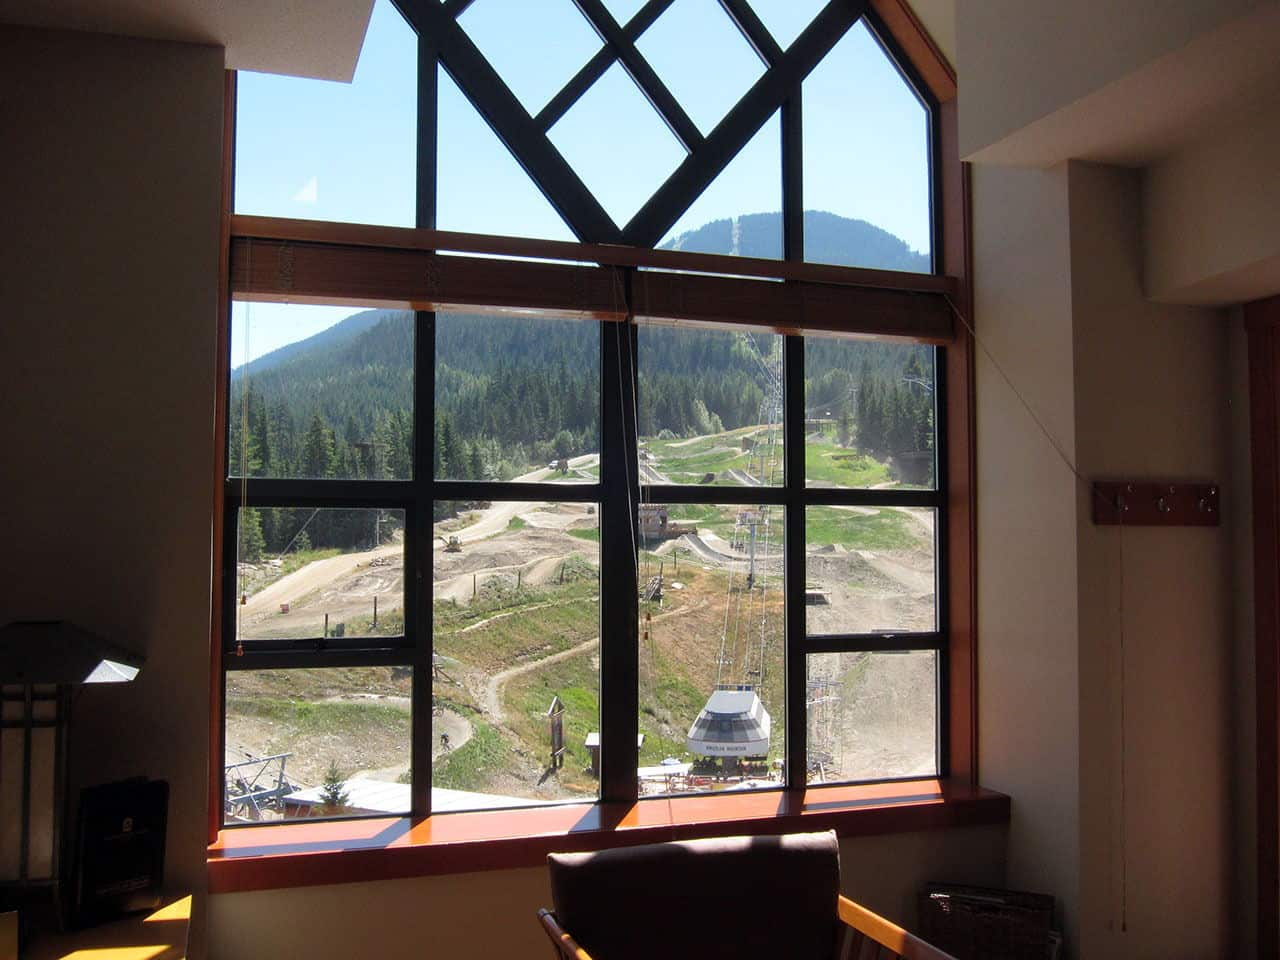 pan-pacific-whistler-mountainside-view-whistler-bike-park